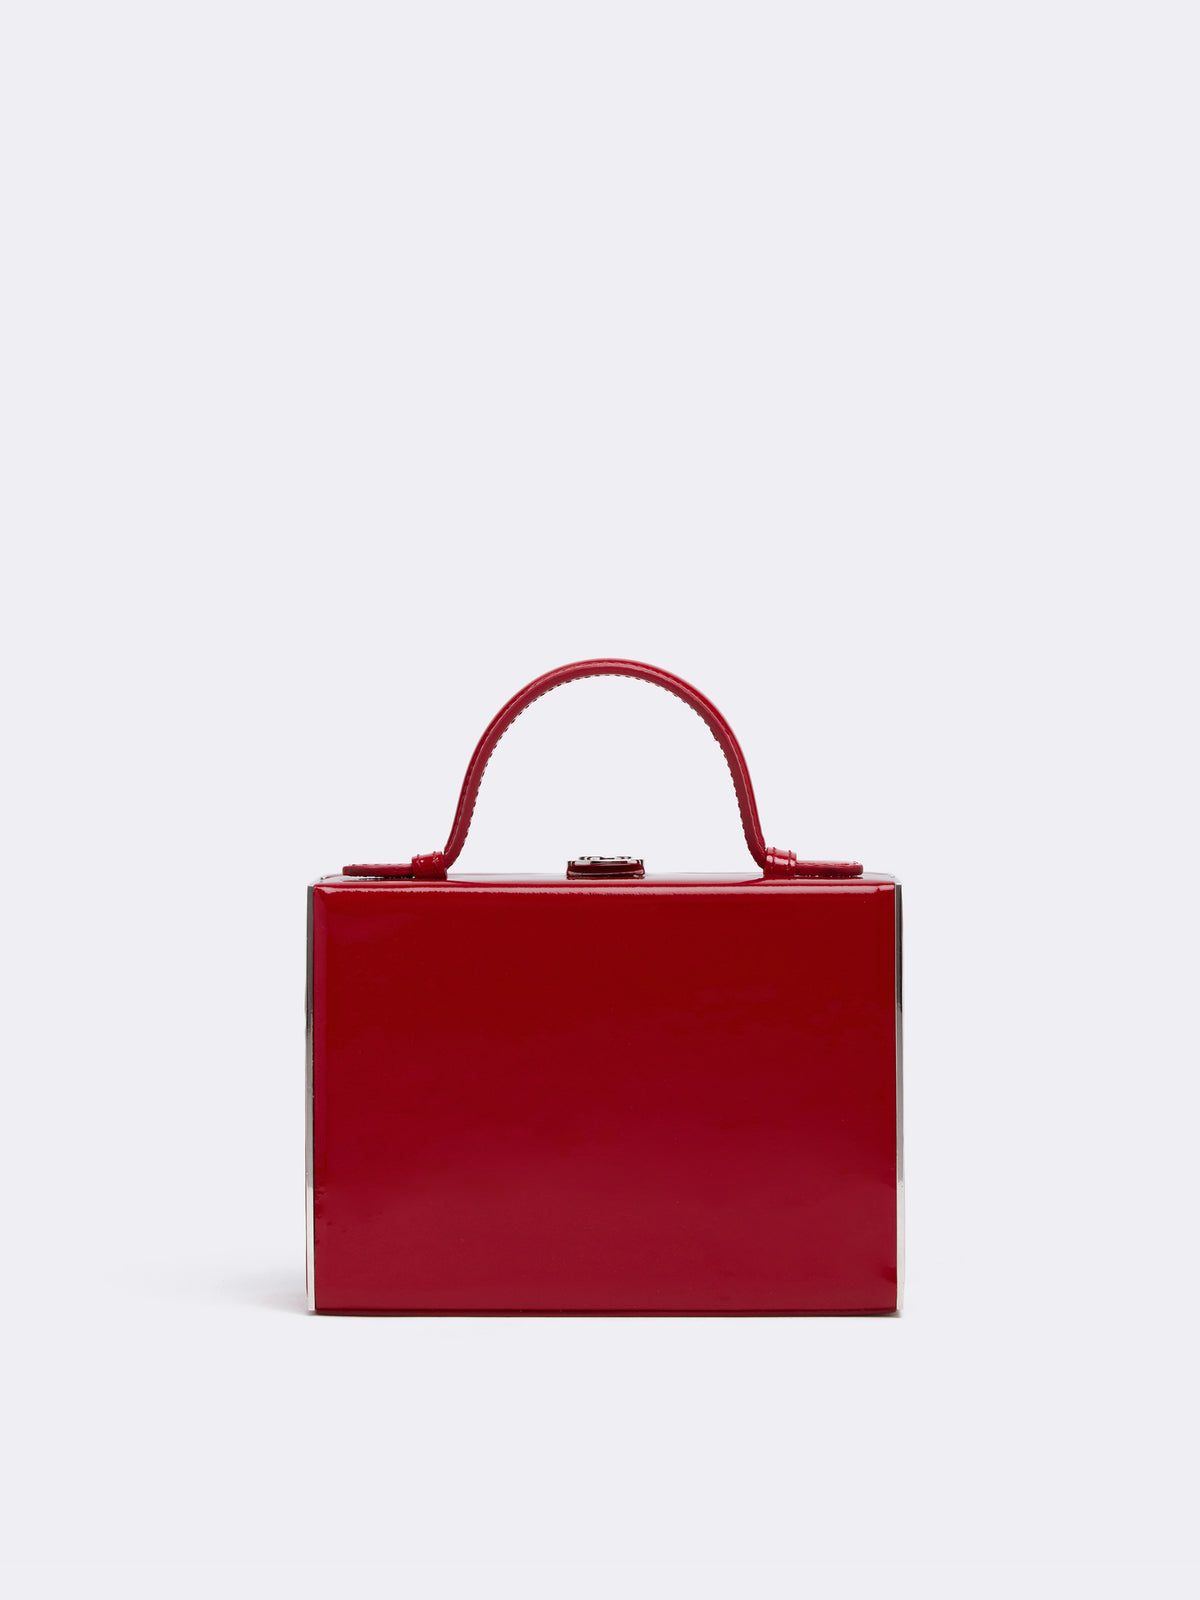 Mark Cross Rear Window Evening Leather Bag Soft Patent Red Front